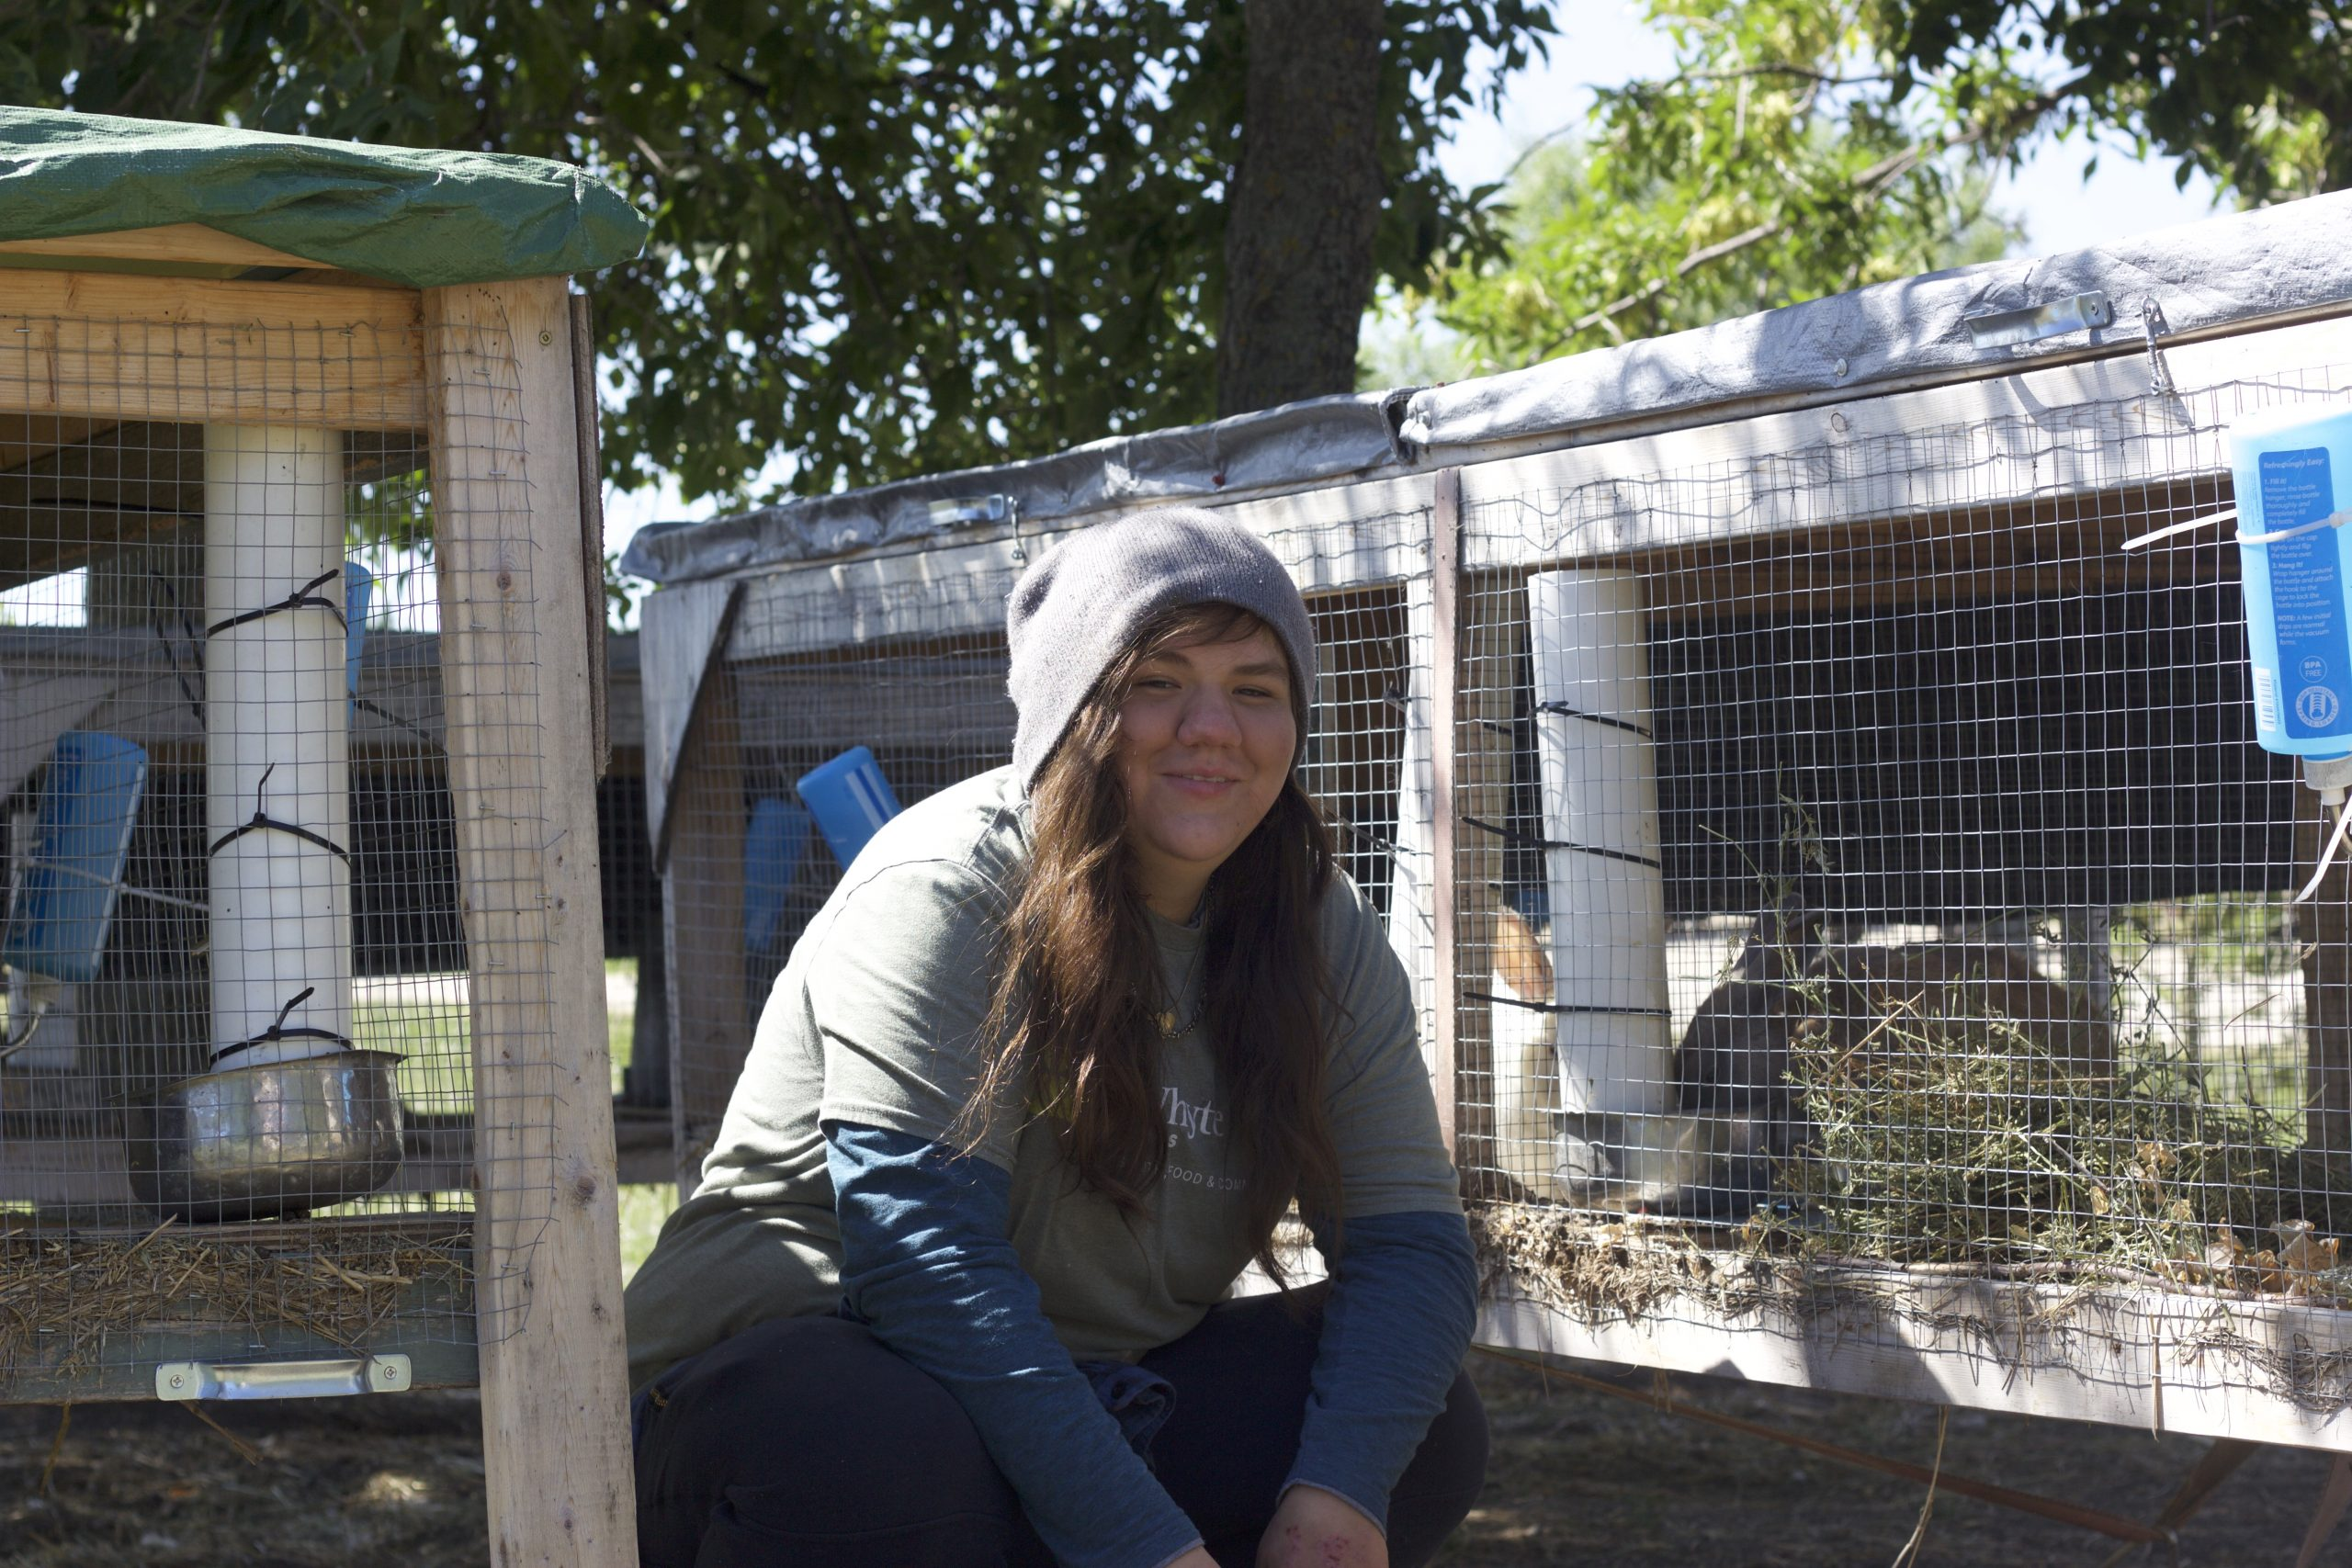 Sara from FortWhyte Farms kneels next to the rabbit enclosure.